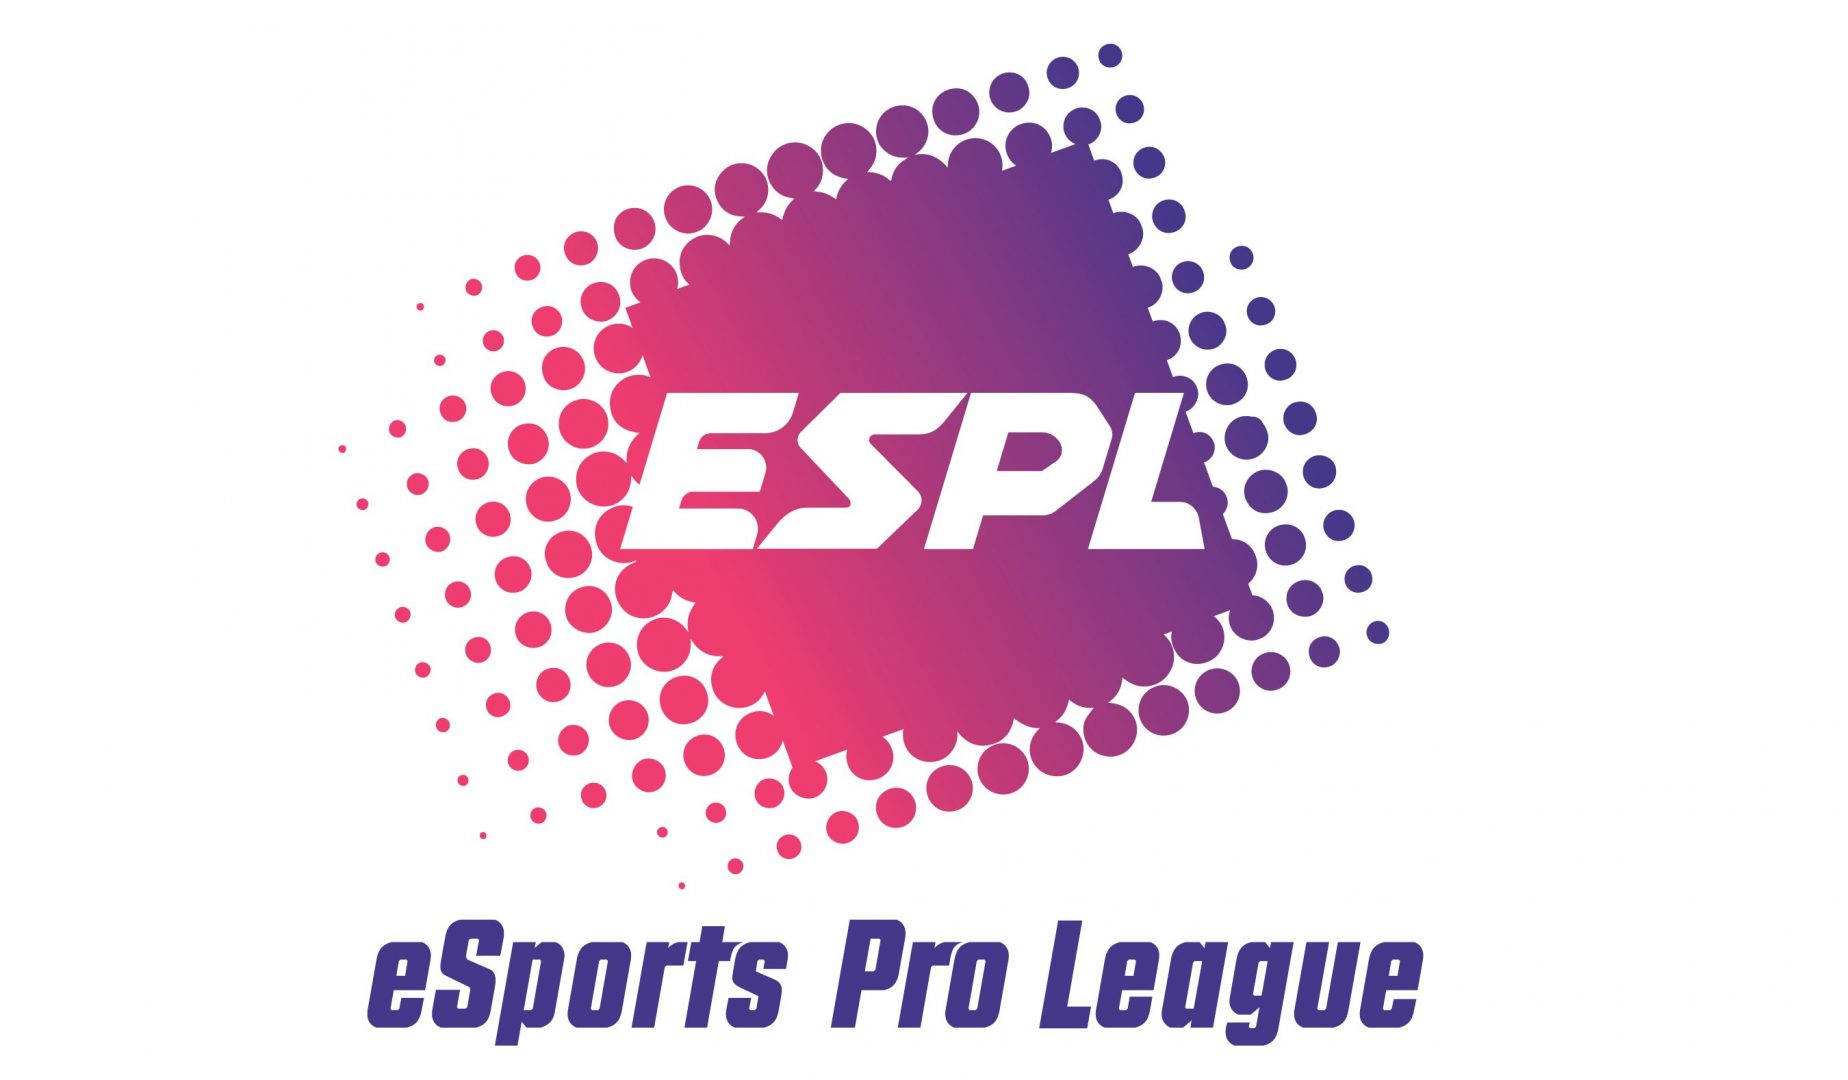 Esports Players League, ESPL, receives $1m in seed funding